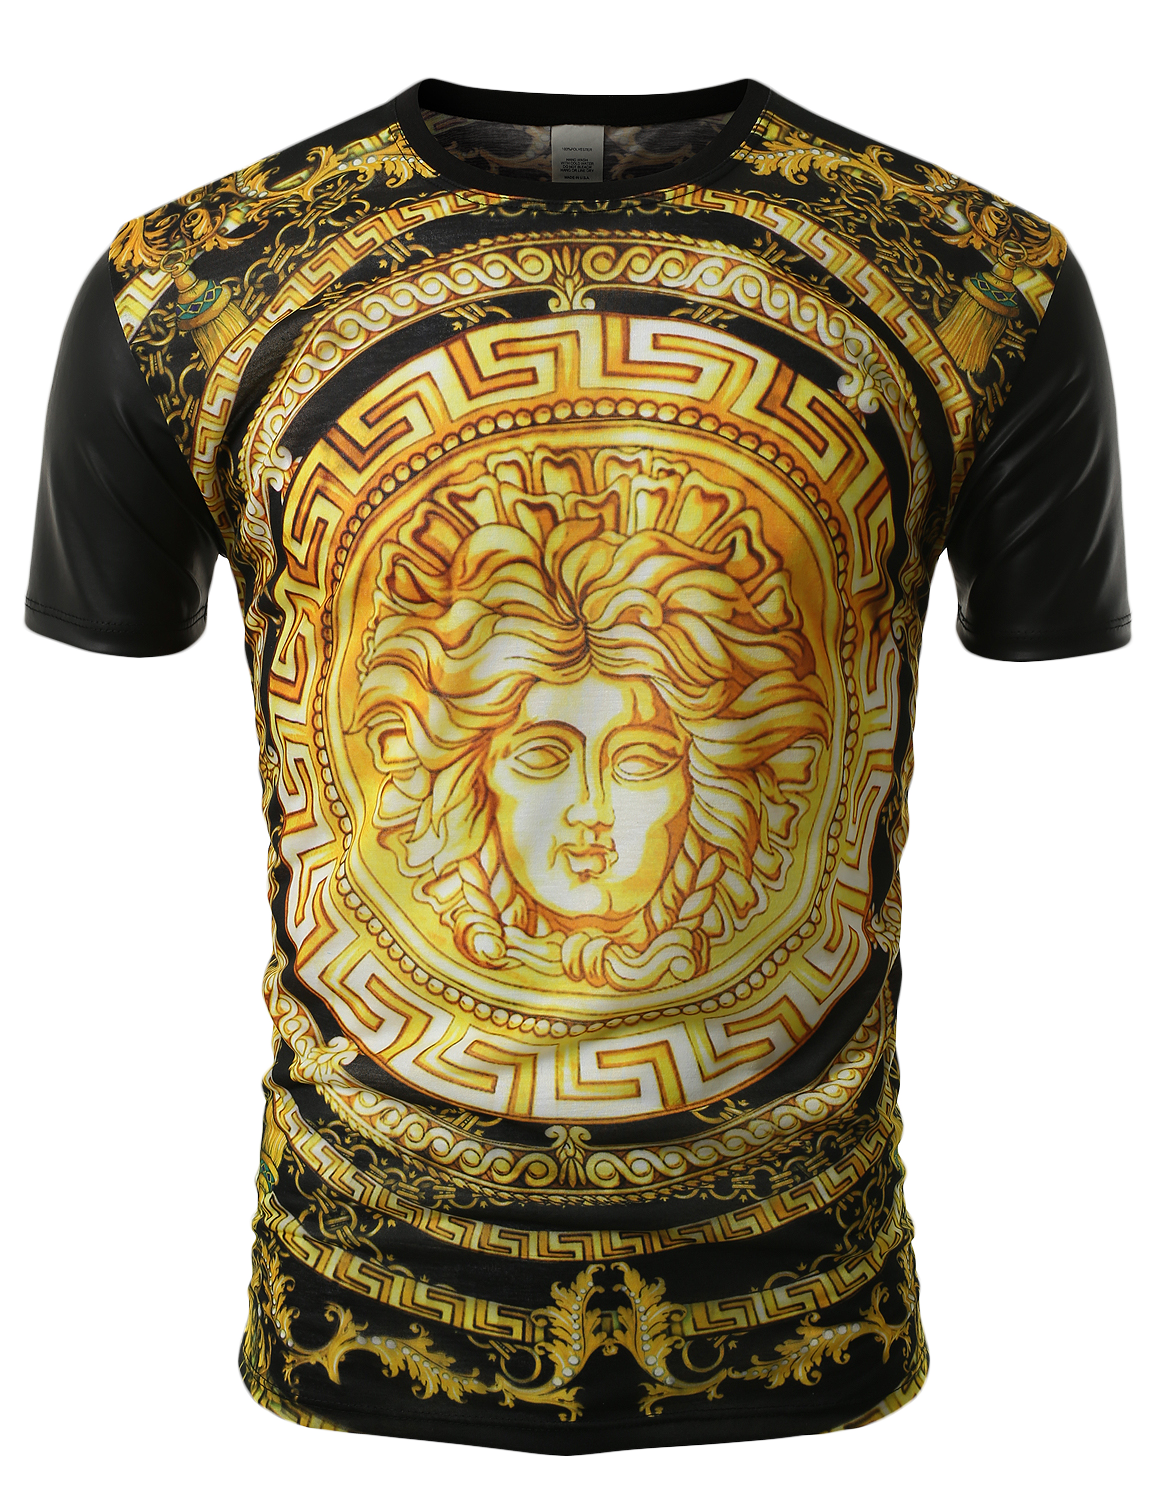 SMITHJAY Mens Hipster Hip-Hop Gold Medusa Head Sublimation PU Sleeves Tee   smithjay 4e697bc861e